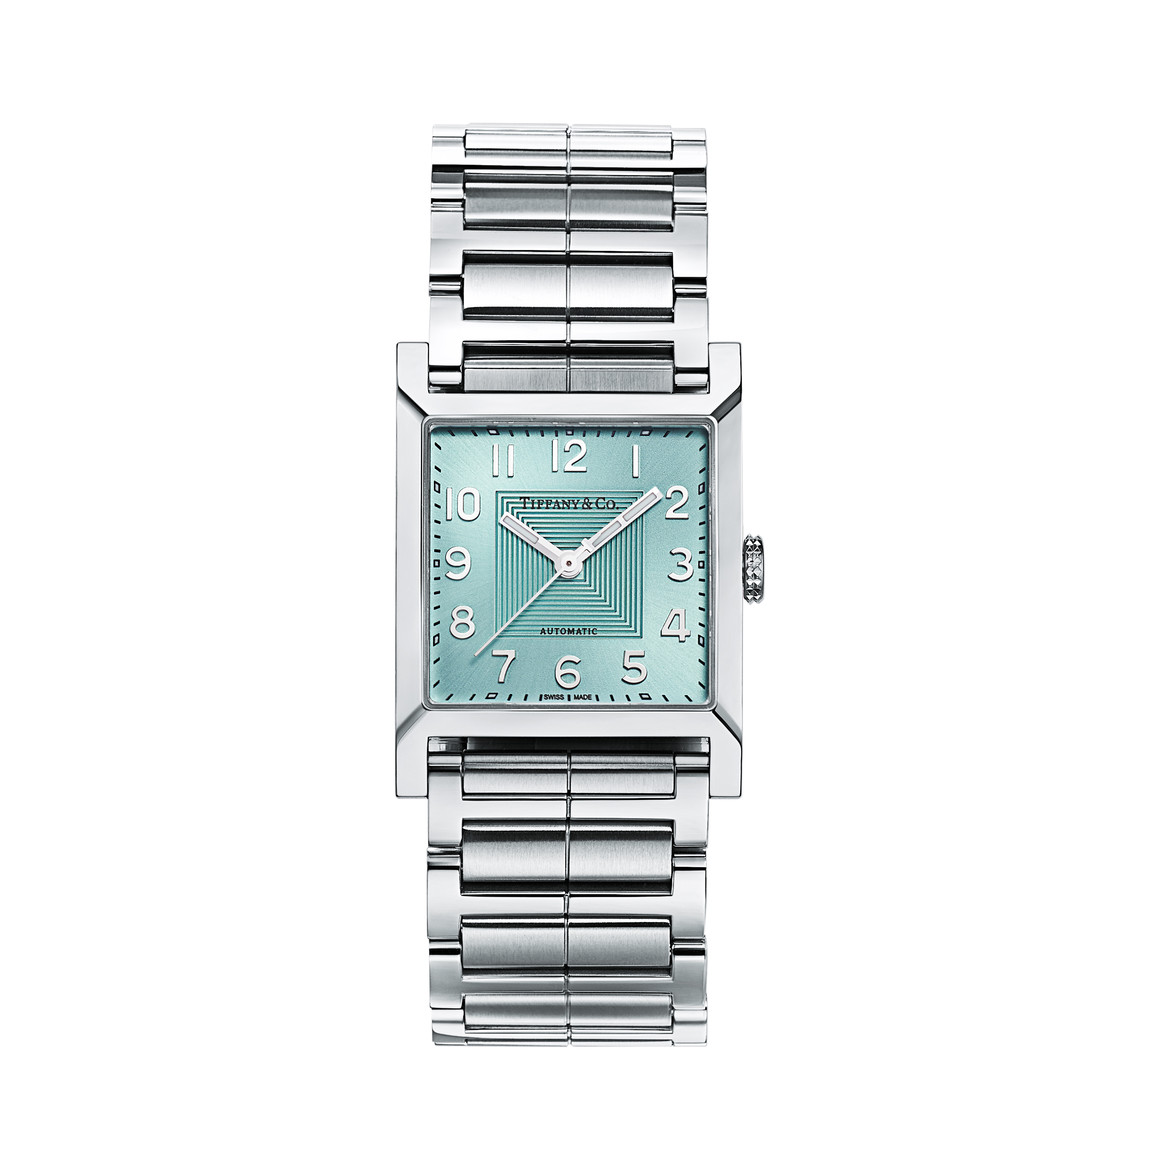 Tiffany & Co.  Tiffany 1837 Makers 27 mm square watch in stainless steel with a Tiffany  Blue® dial $29,000